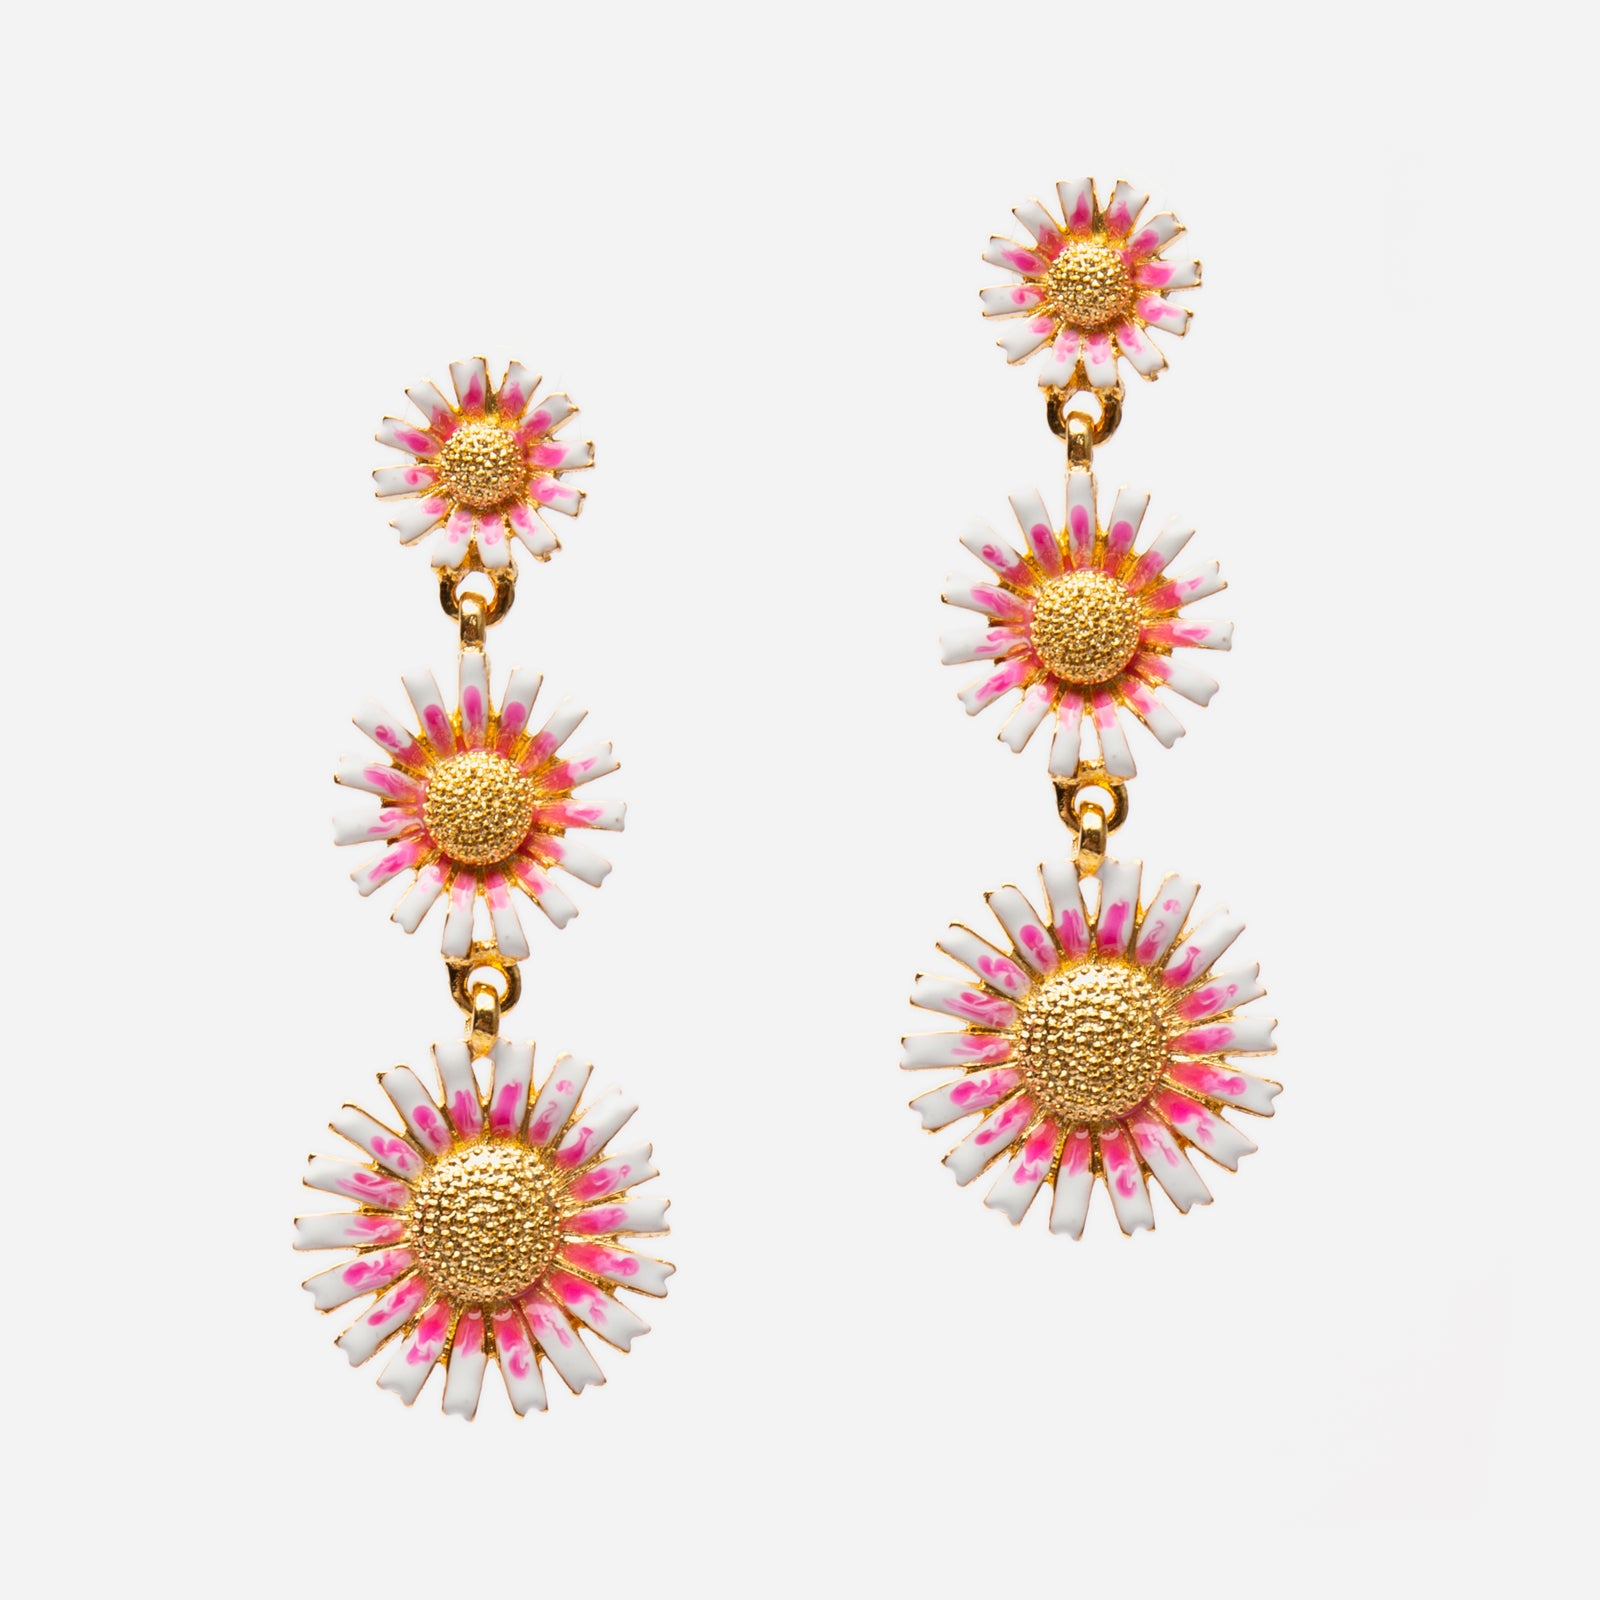 Cascading Daisy Earrings